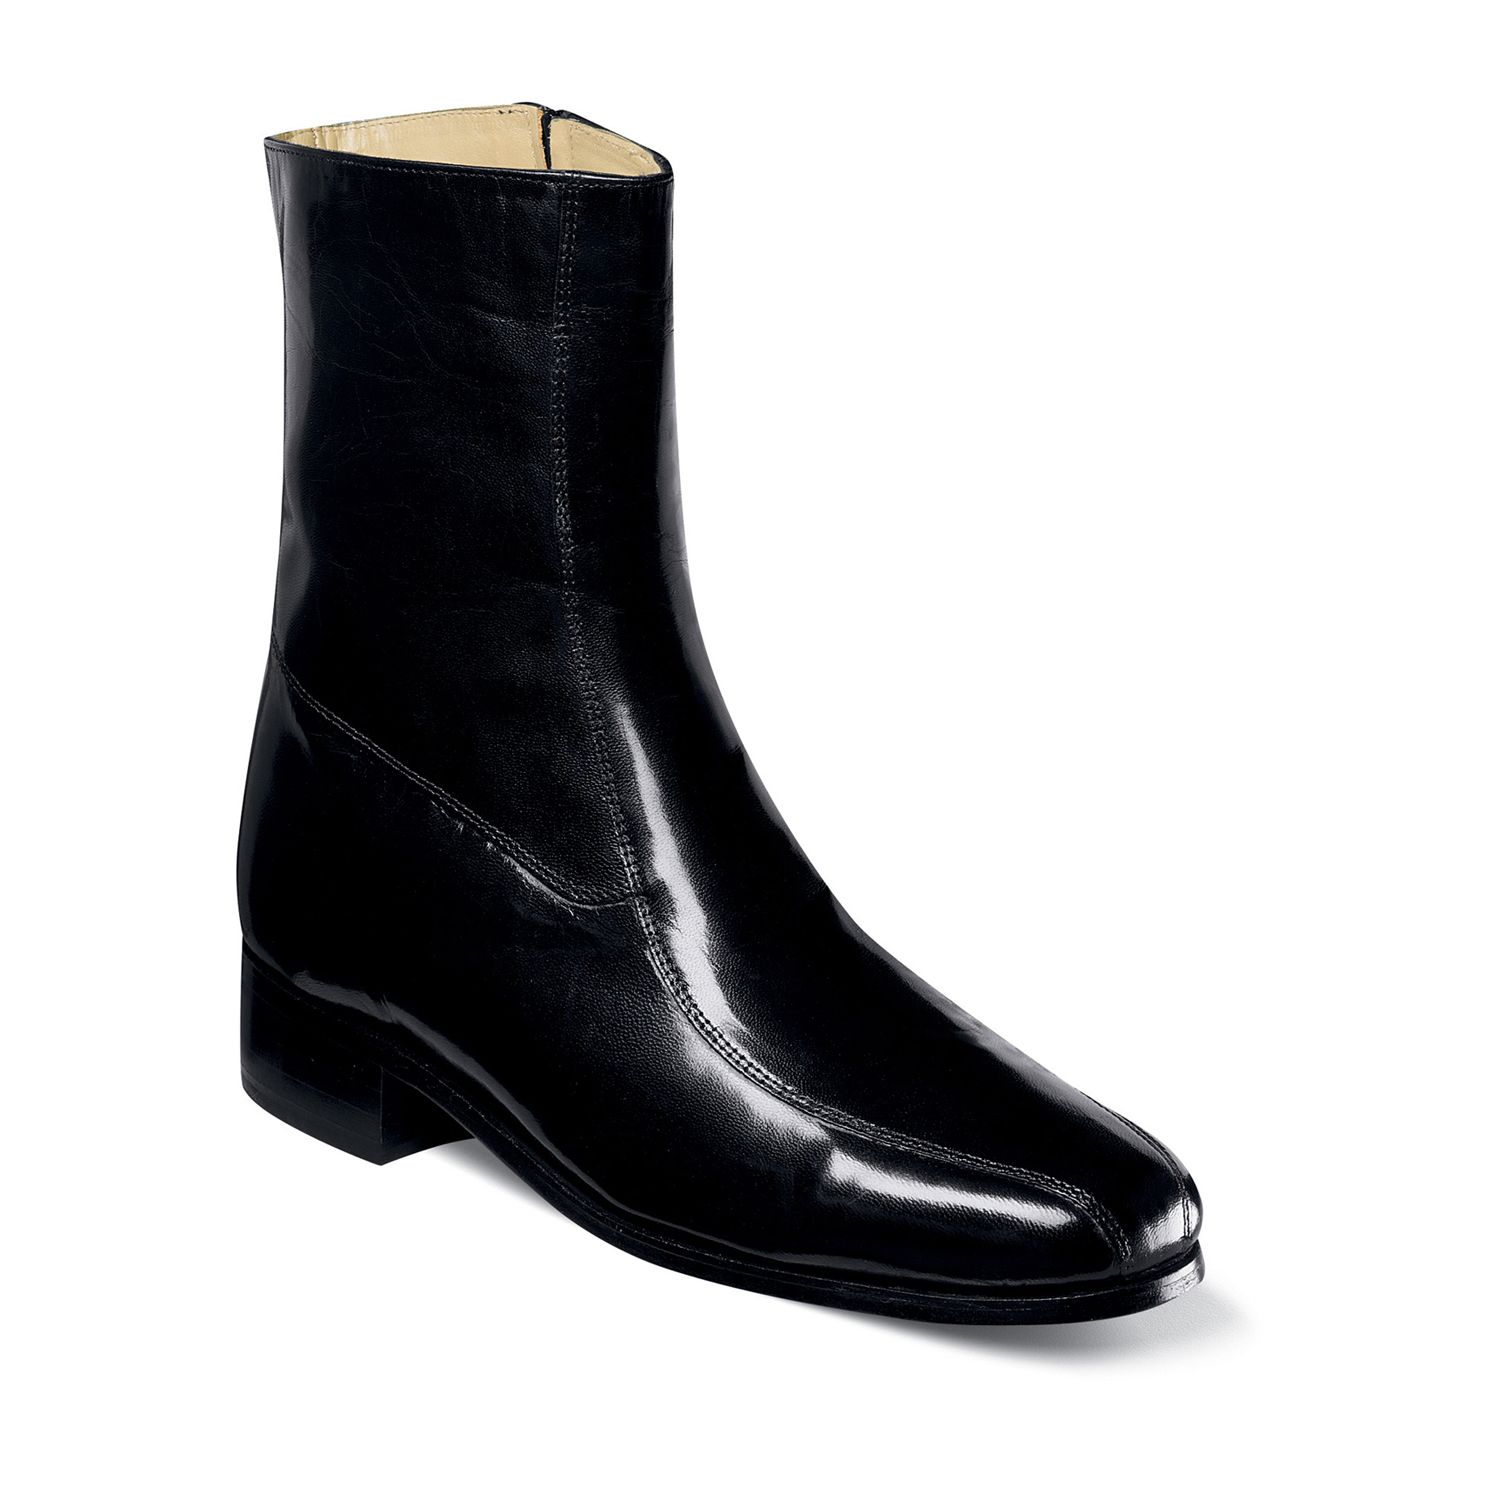 Dress Black boots for men pictures